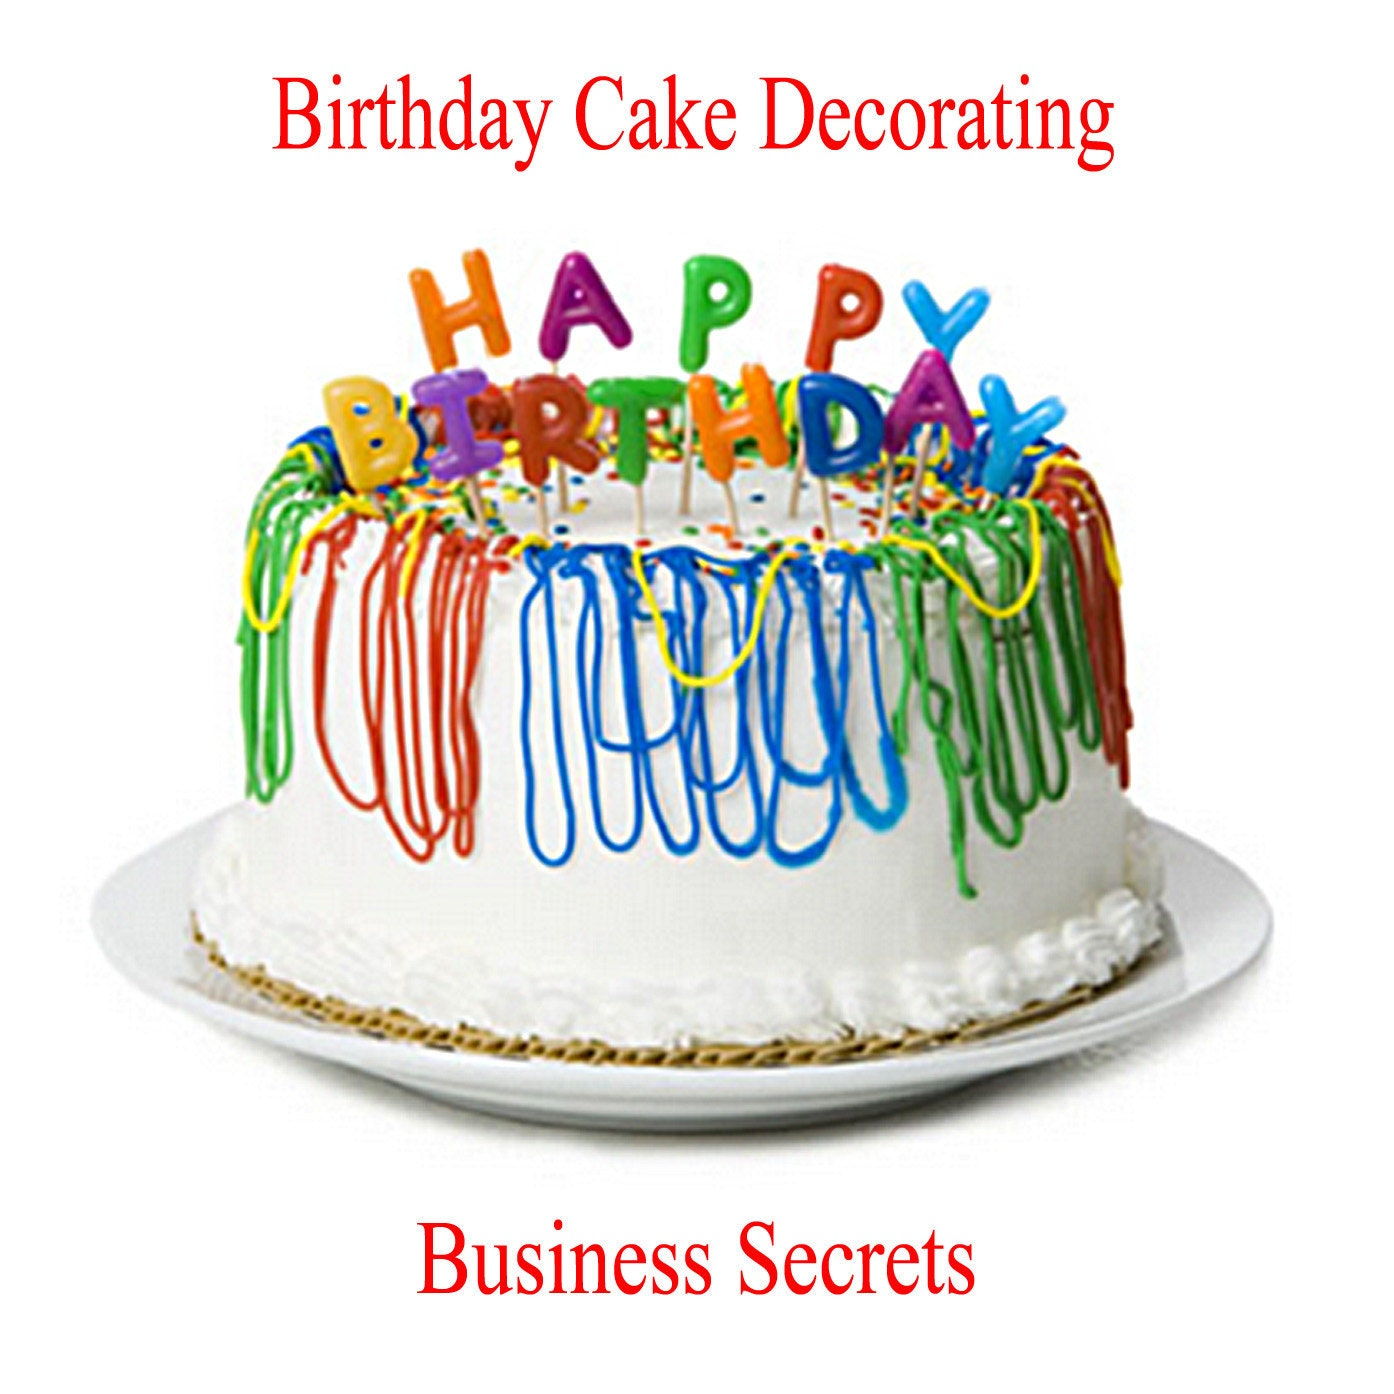 Birthday Cake Decorate Your Own  Image Inspiration Of Cake And - Cake decorating birthday